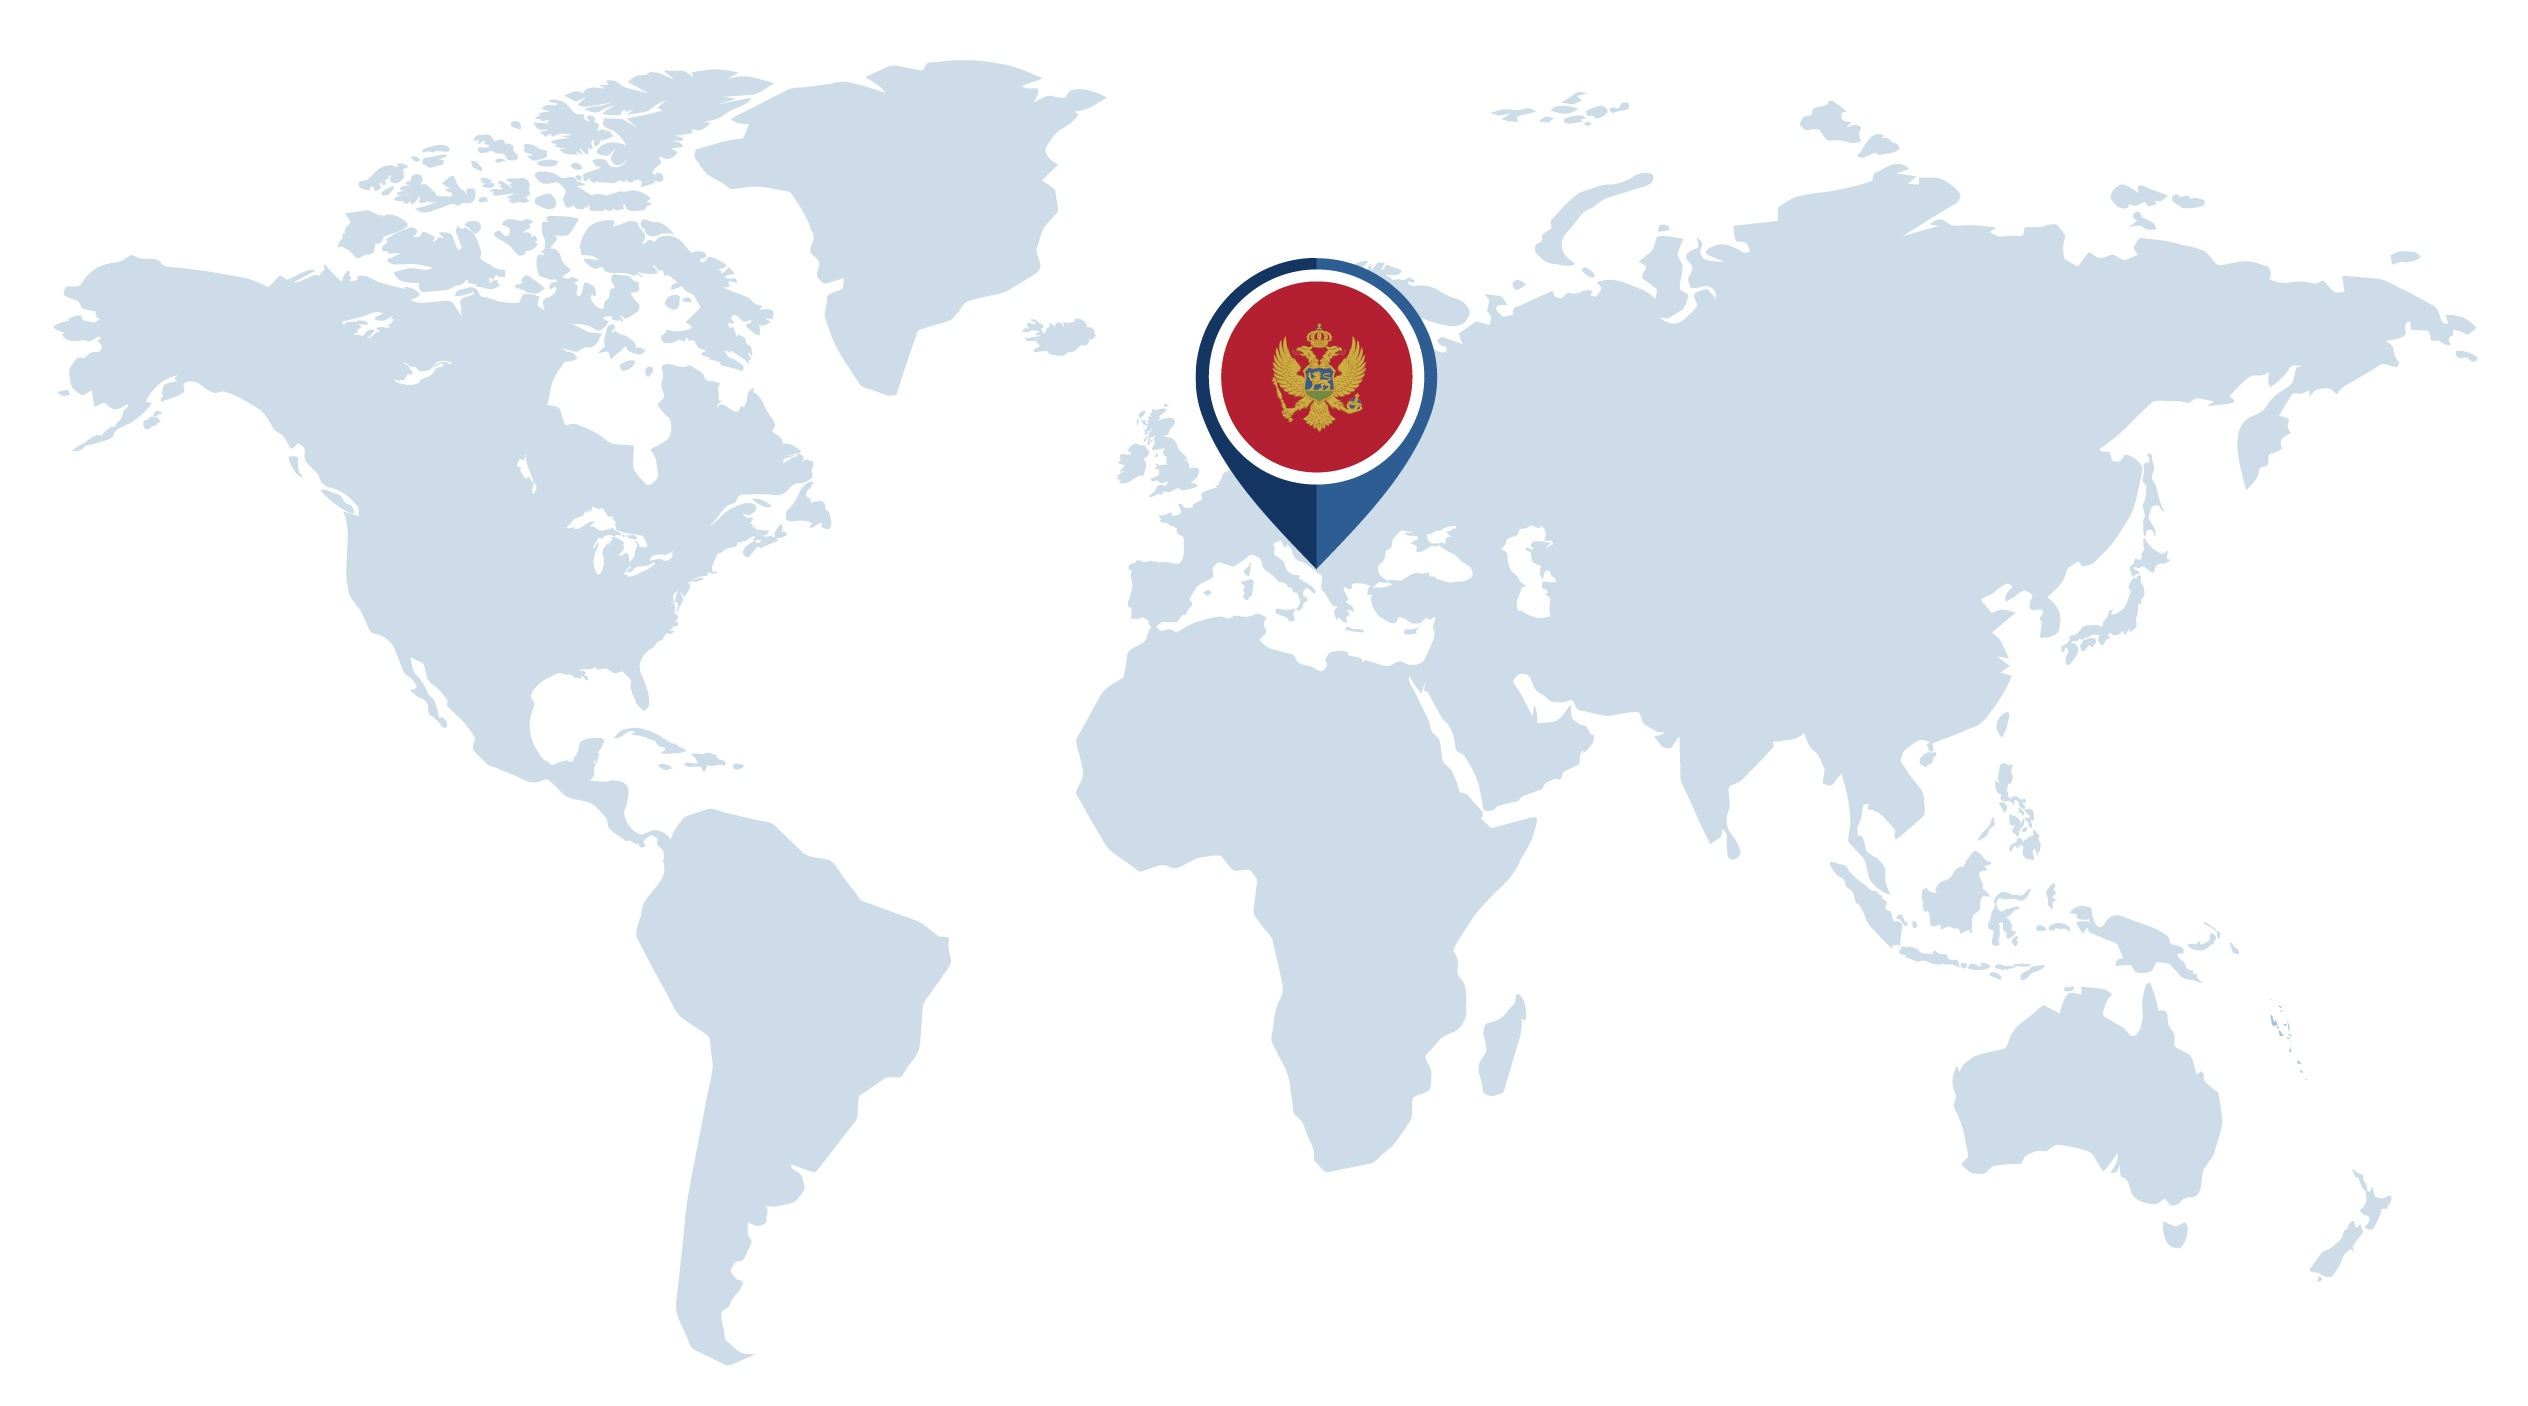 https://www.bluemina.com/wp-content/uploads/2020/06/Montenegro-map-and-flag-01-1.jpg